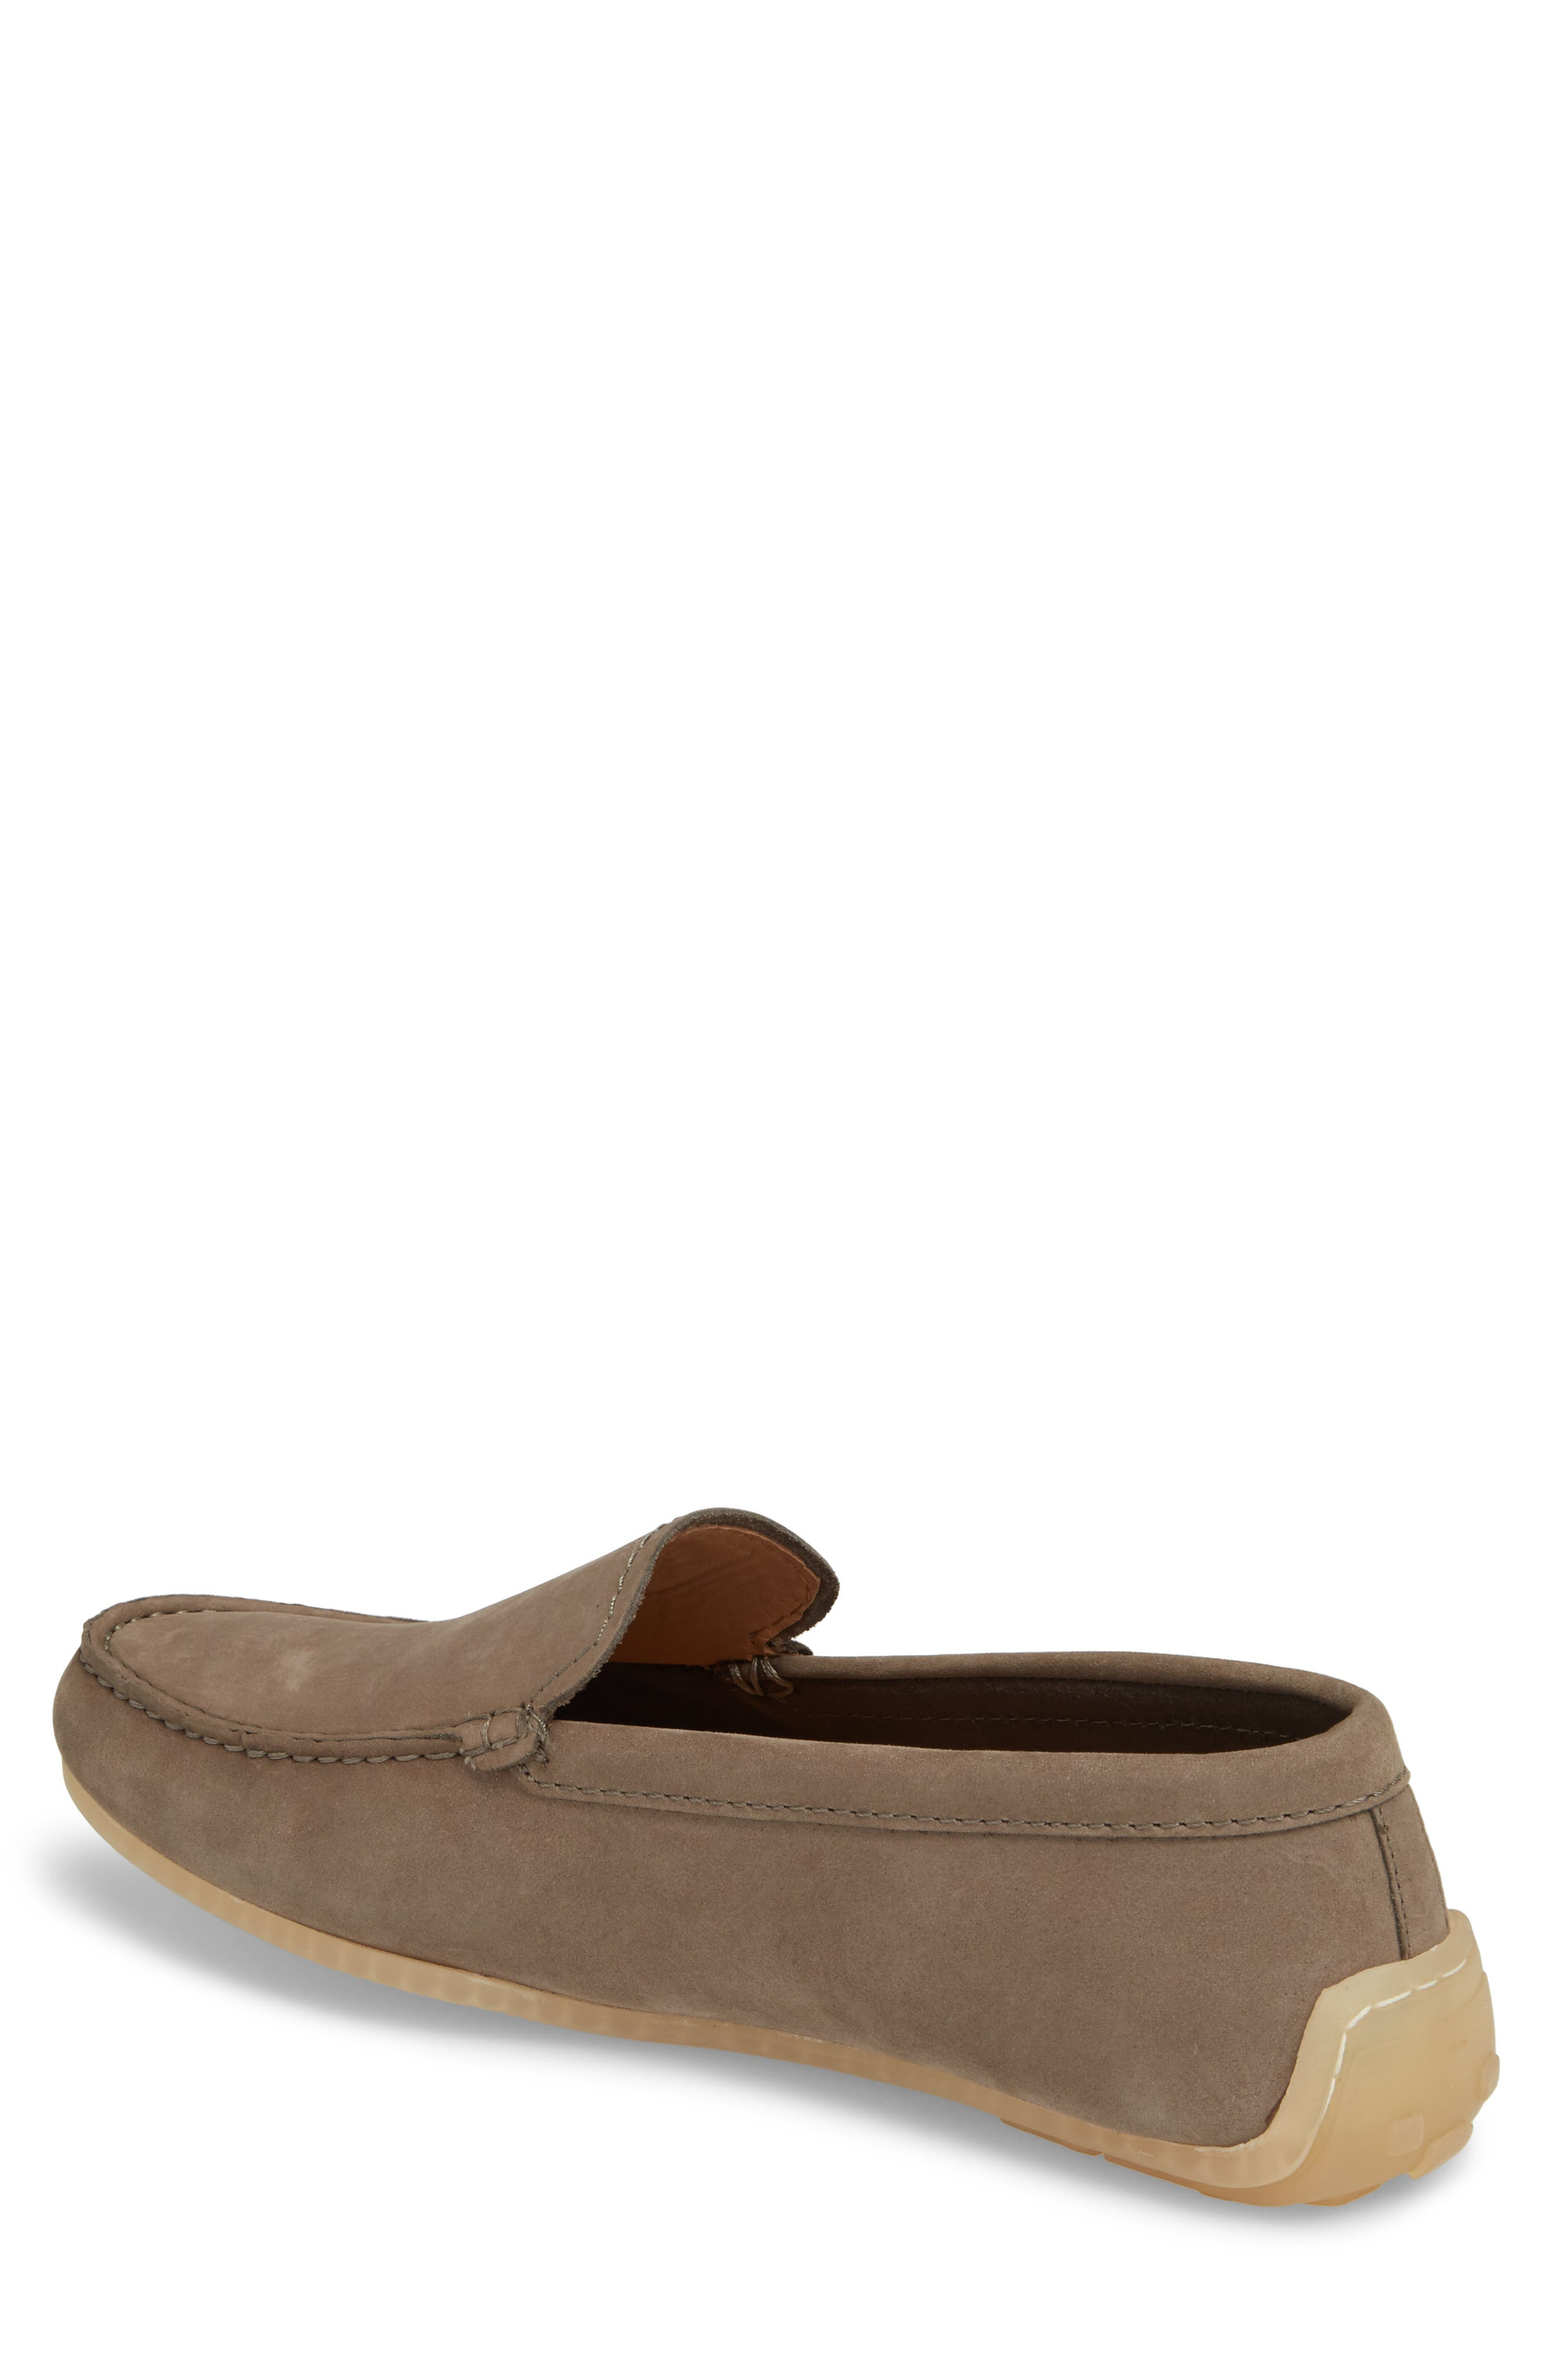 Clarks<sup>®</sup> Reazor Edge Driving Moccasin,                             Alternate thumbnail 2, color,                             SAGE NUBUCK